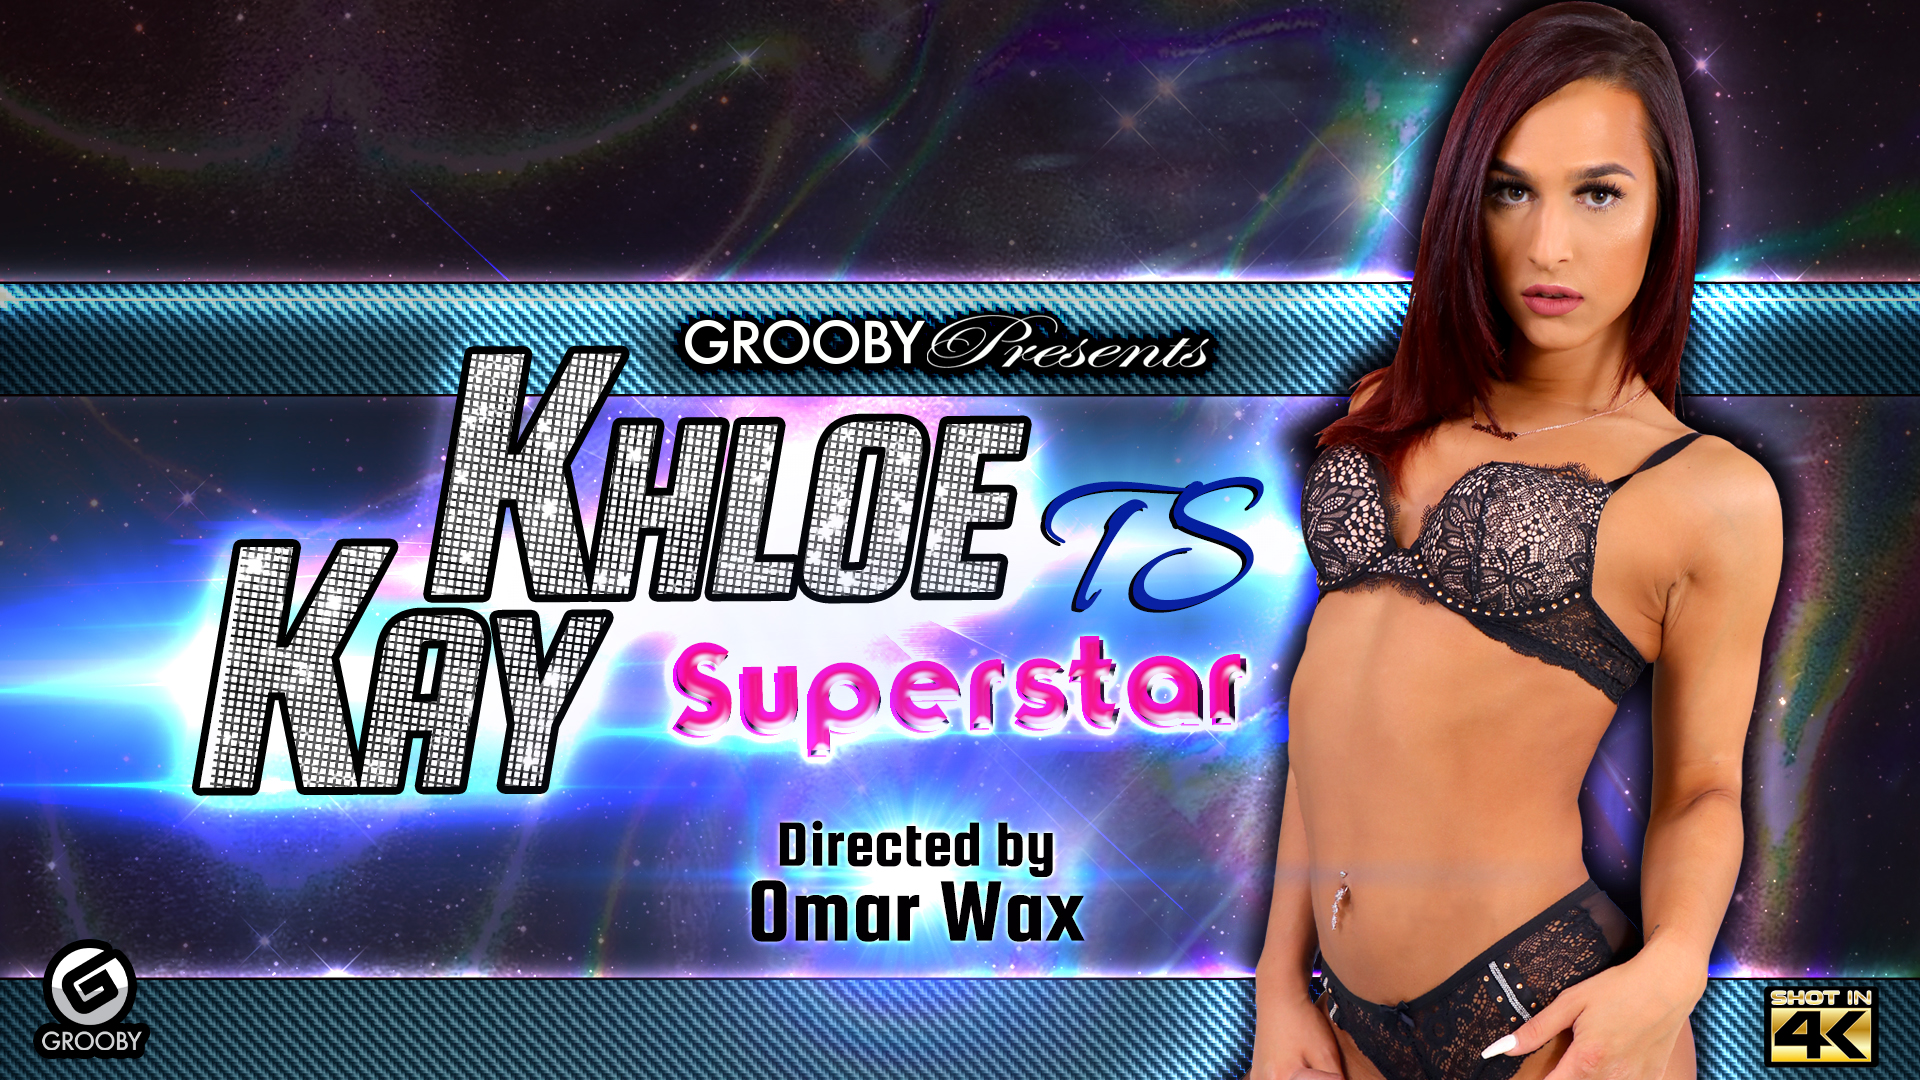 Khloe Kay Ts Superstar DVD Trailer